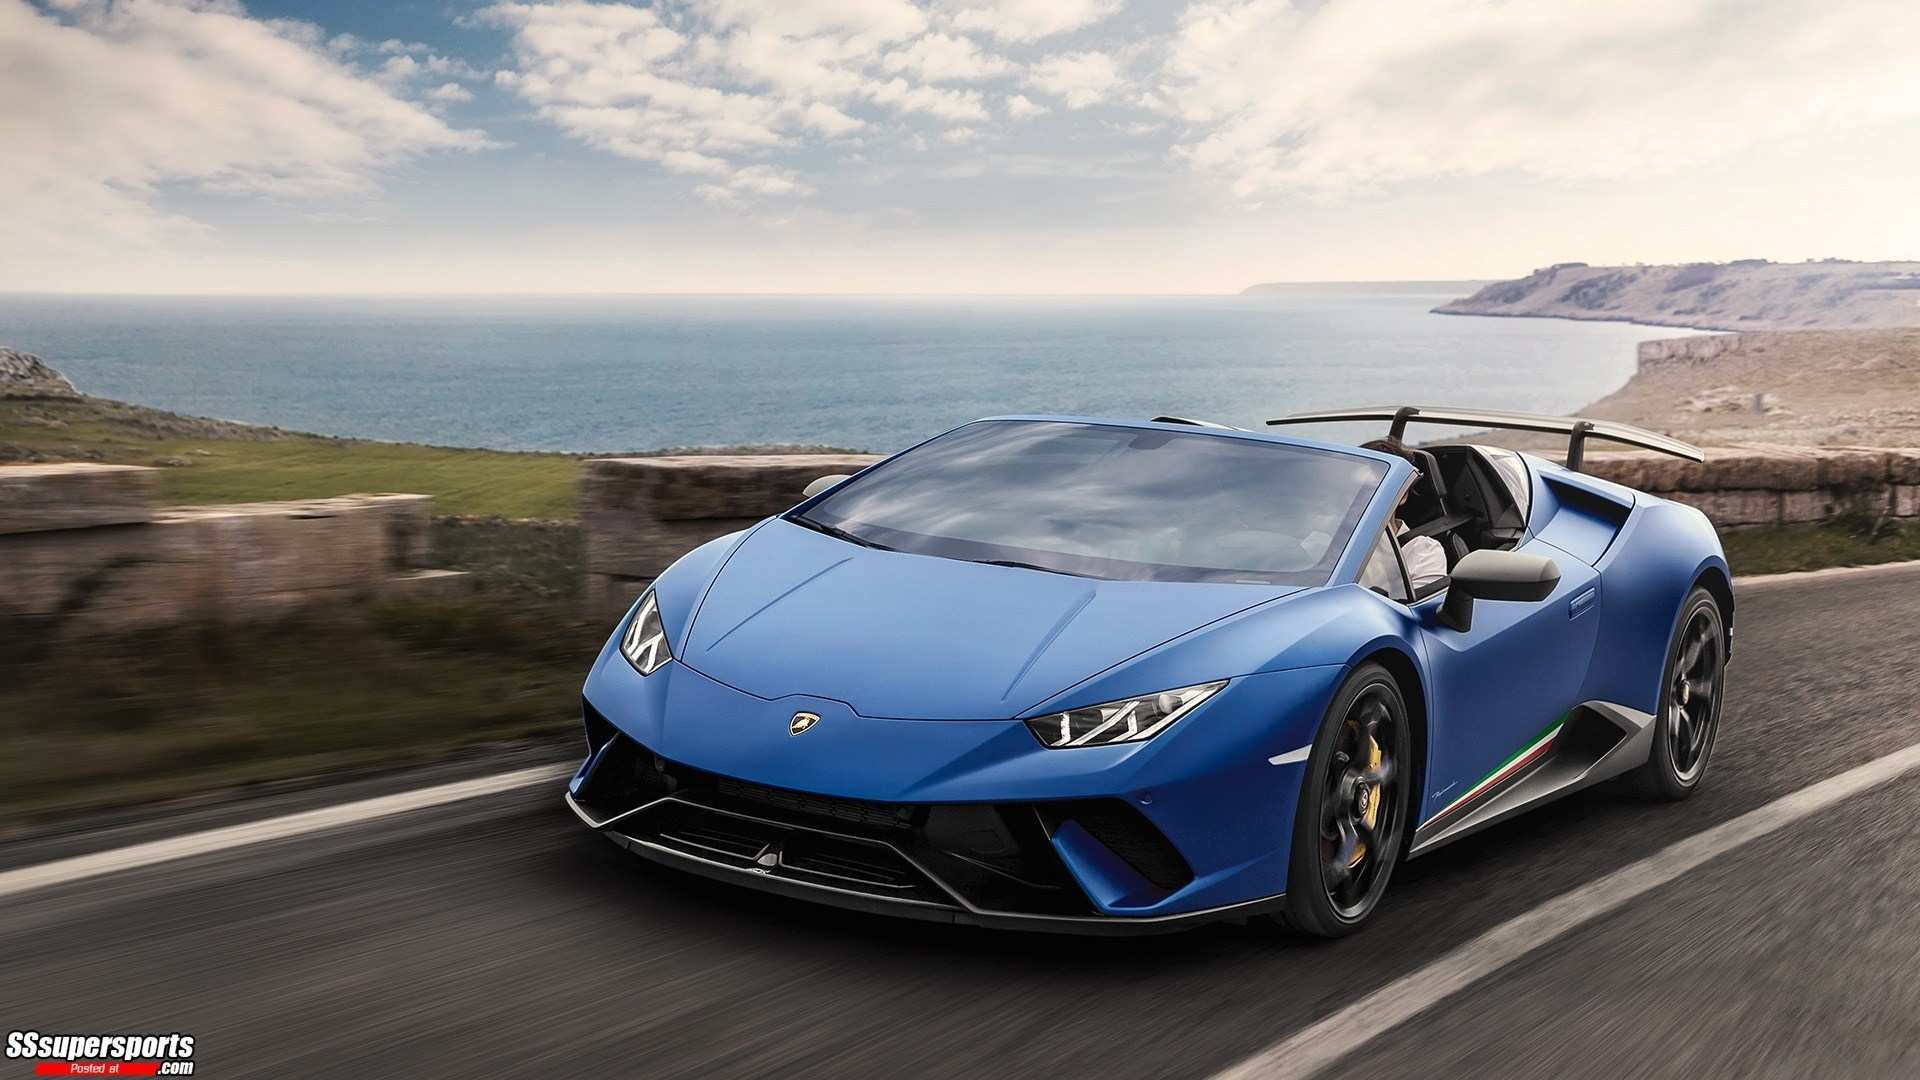 26 New 2019 Lamborghini Performante Prices by 2019 Lamborghini Performante